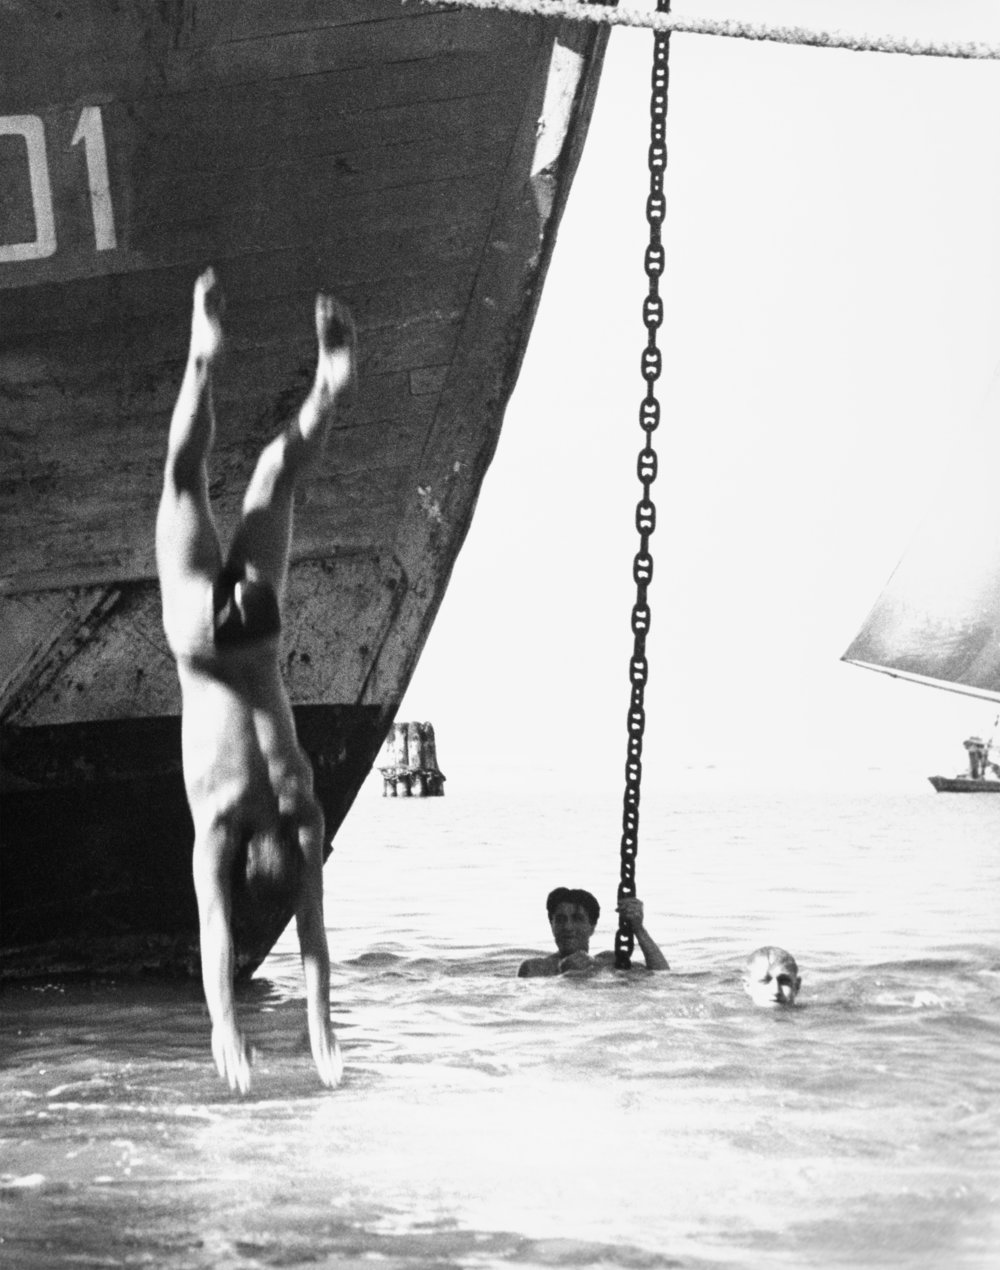 Italy #17, Venice, August 10, 1948